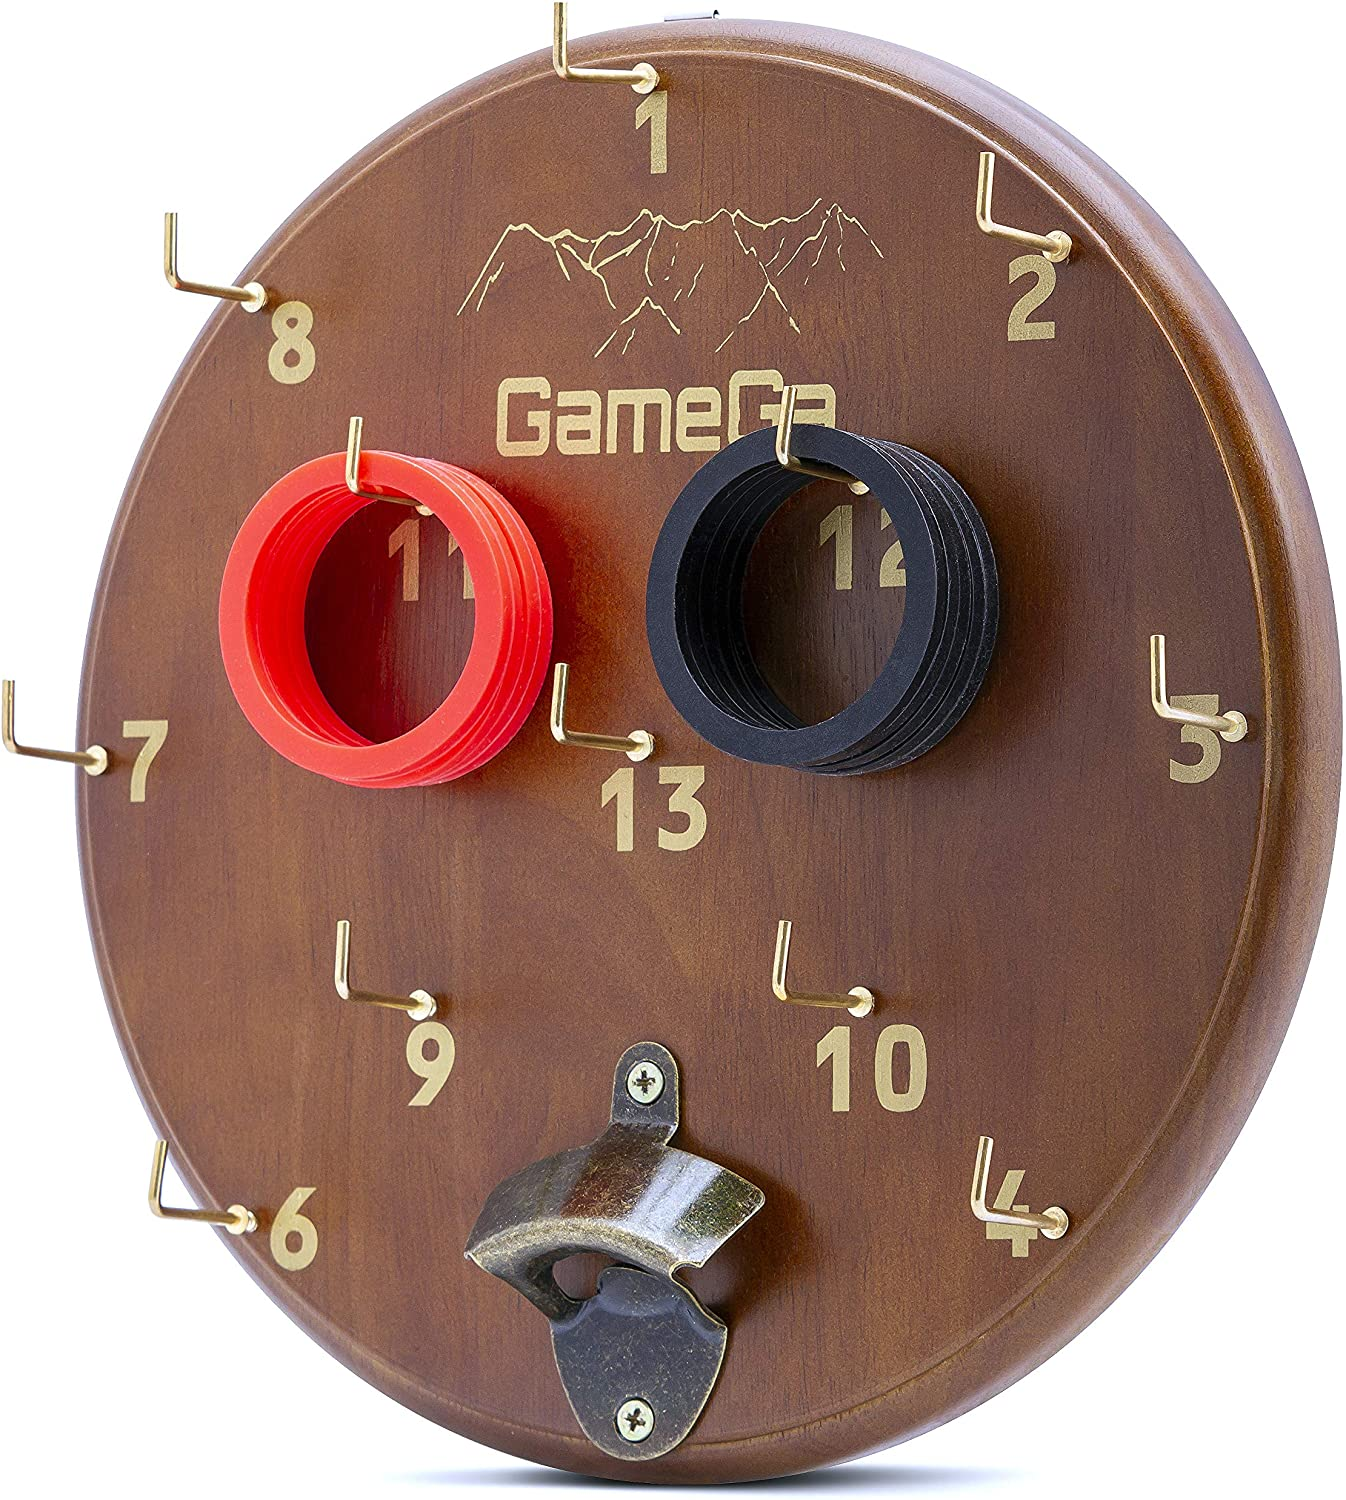 GameGa Hook and Ring Toss Game for Kids and Adults, Birthday Gifts for Men, Boys or Girls, Man Cave Furniture, Safe Dart Board, Hooky Retro Wood Design, Tiki Toss Bar Game, Outdoor and Indoor Games